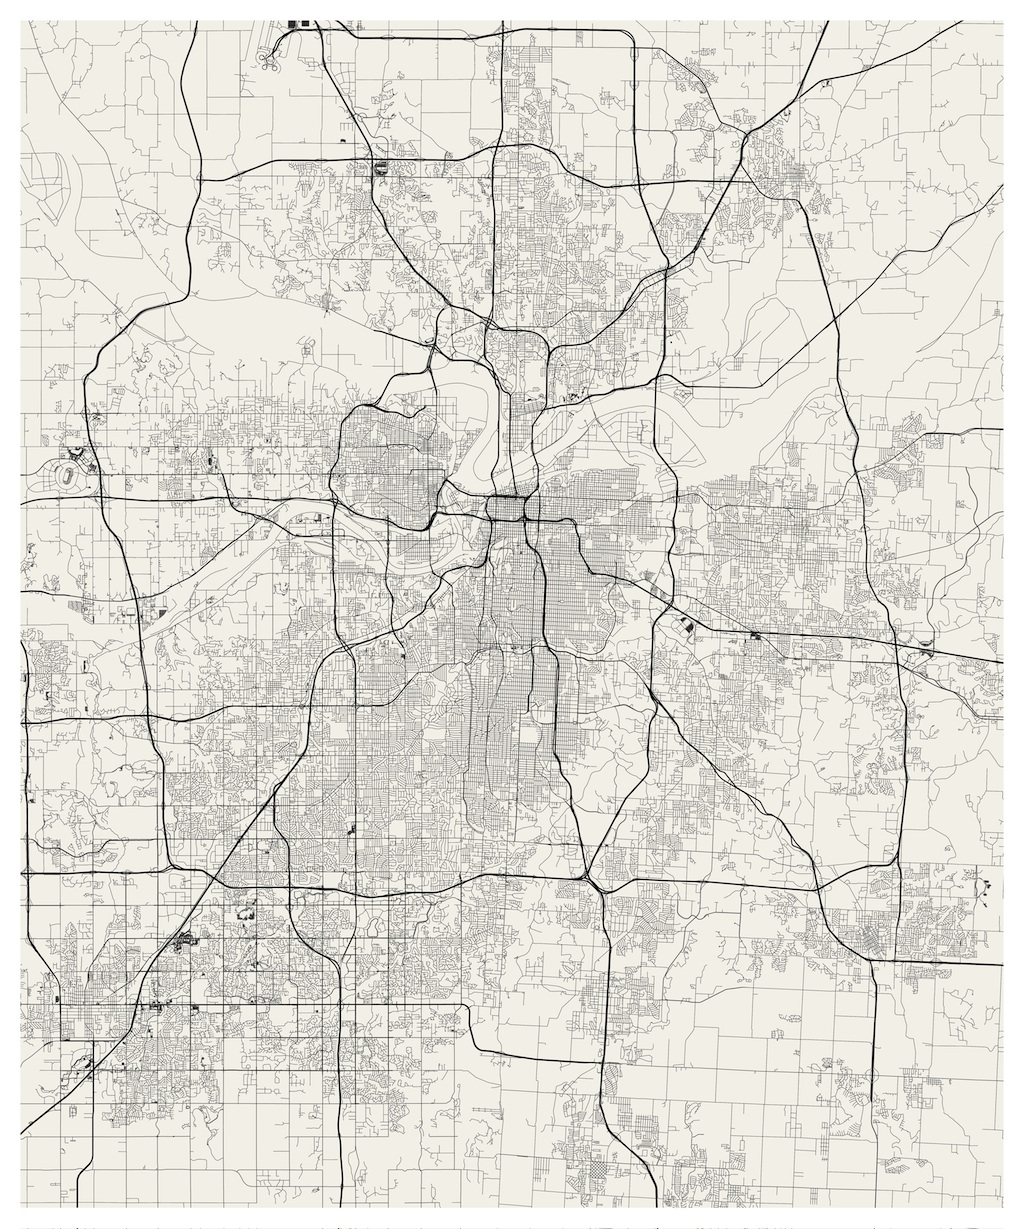 Kansas City Streets Visualized - Jim Vallandingham